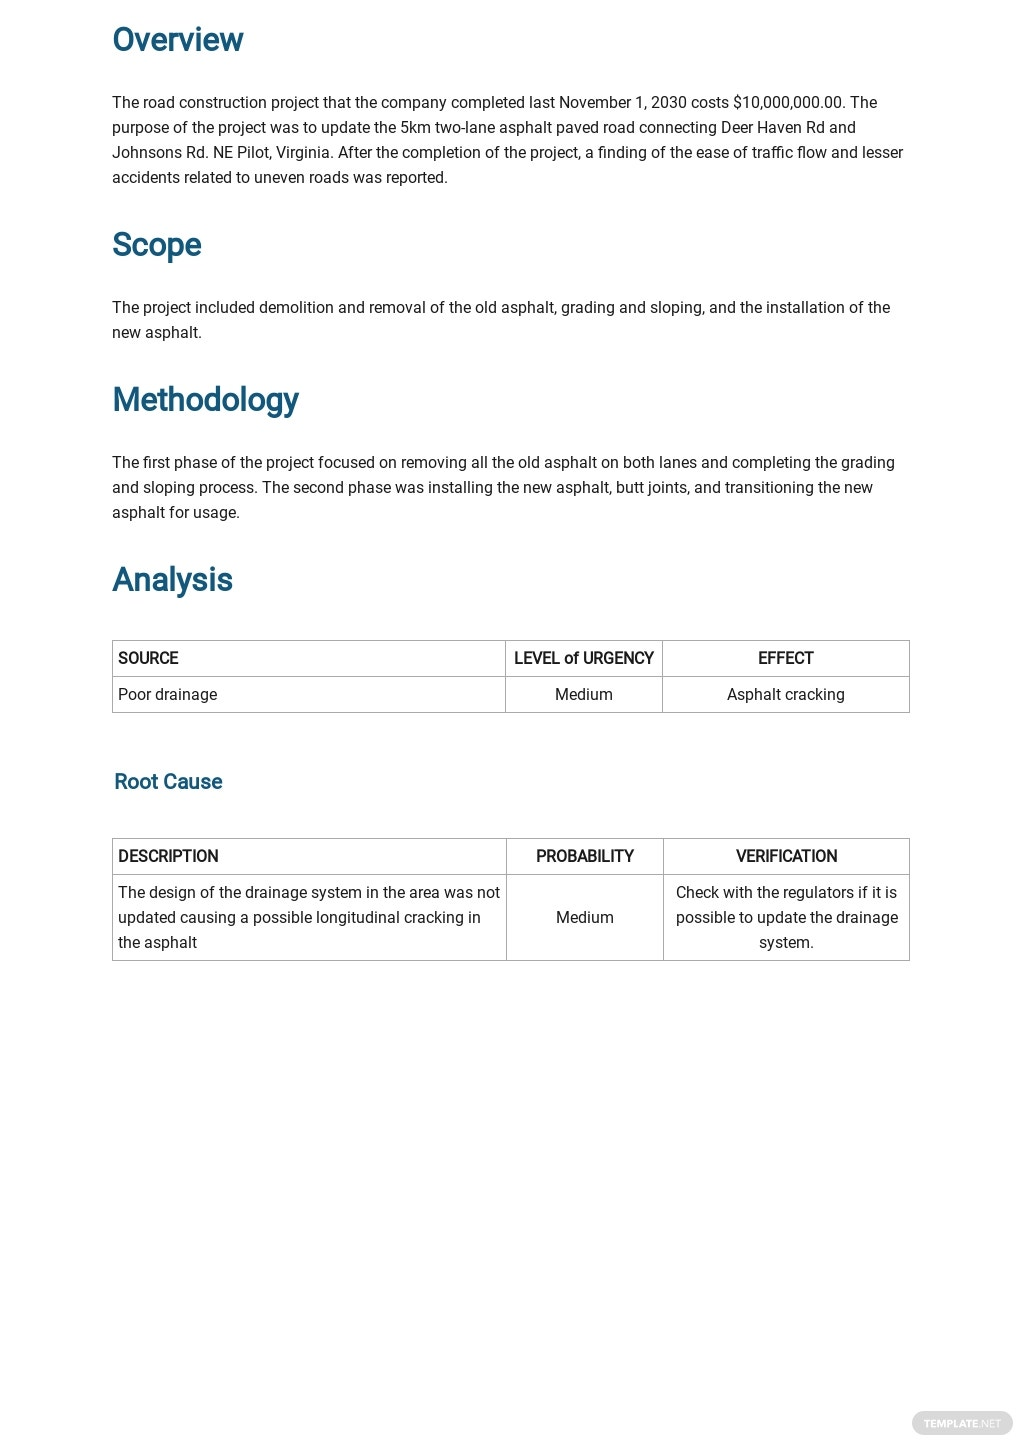 Project Analysis Report Template 1.jpe